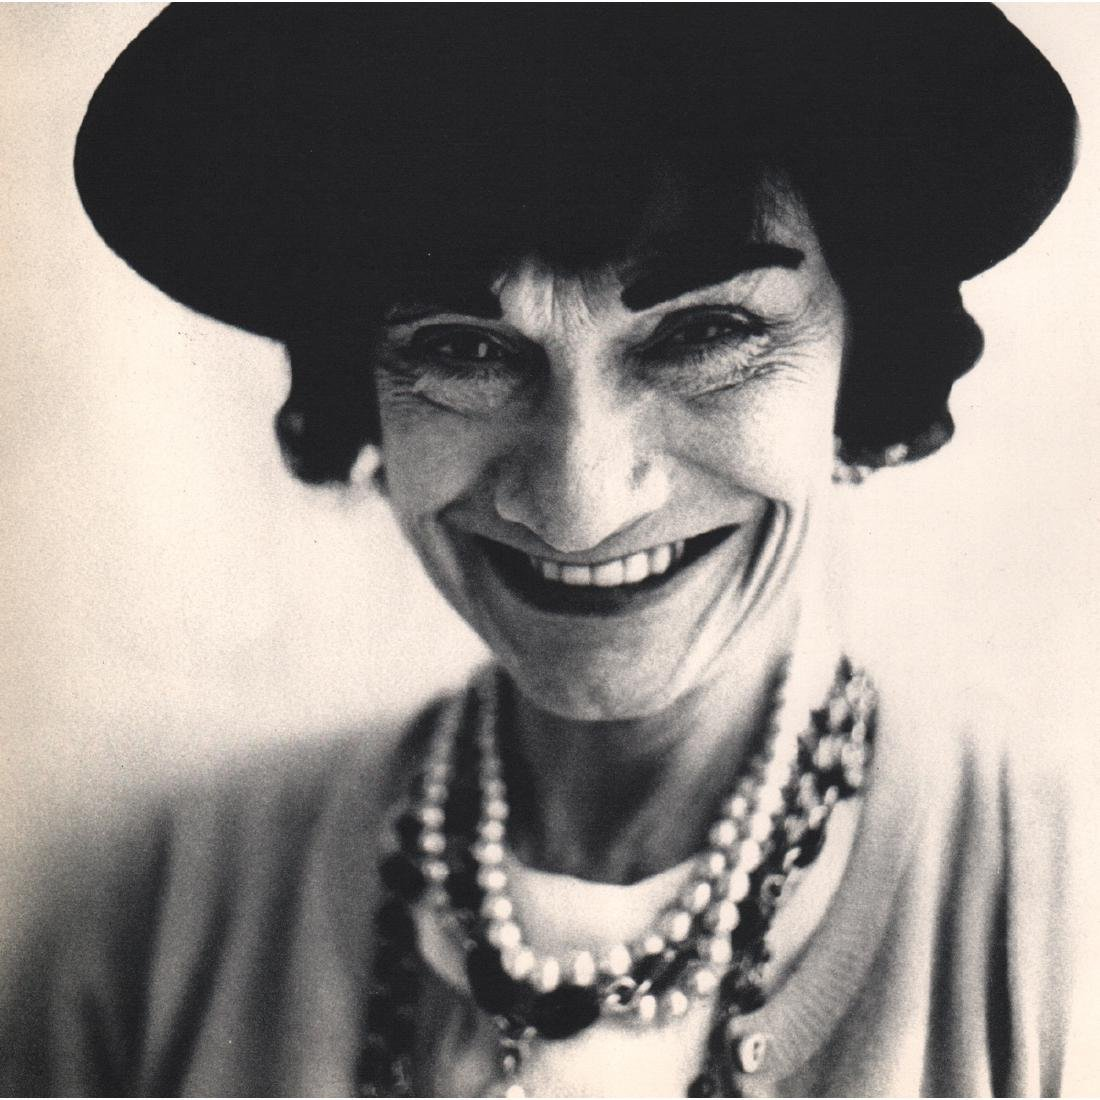 RICHARD AVEDON - Gabrielle Chanel, 1958